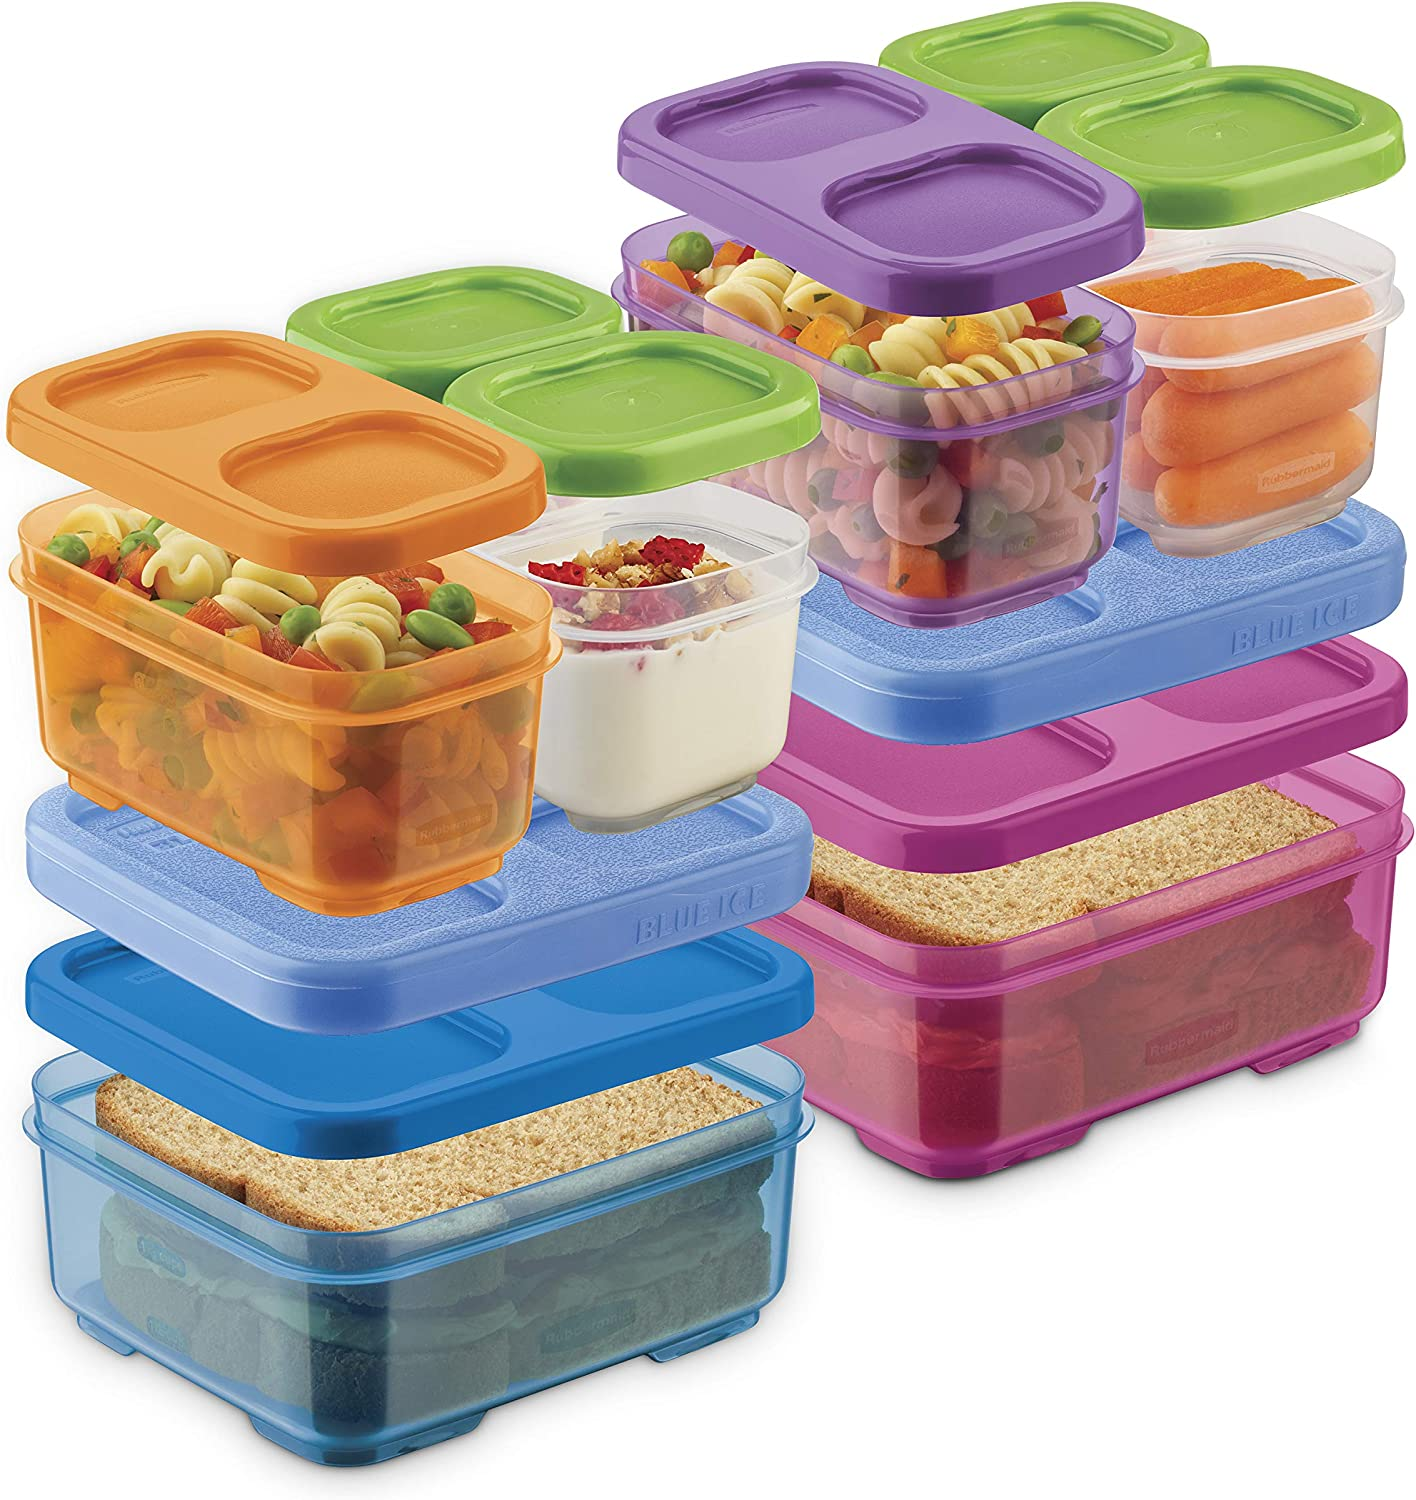 Rubbermaid 2108406 LunchBlox Kids Box and Meal Prep, 2 Pack Set | Stackable & Microwave Safe Lunch Containers | Assorted Colors, Purple/Pink/Green